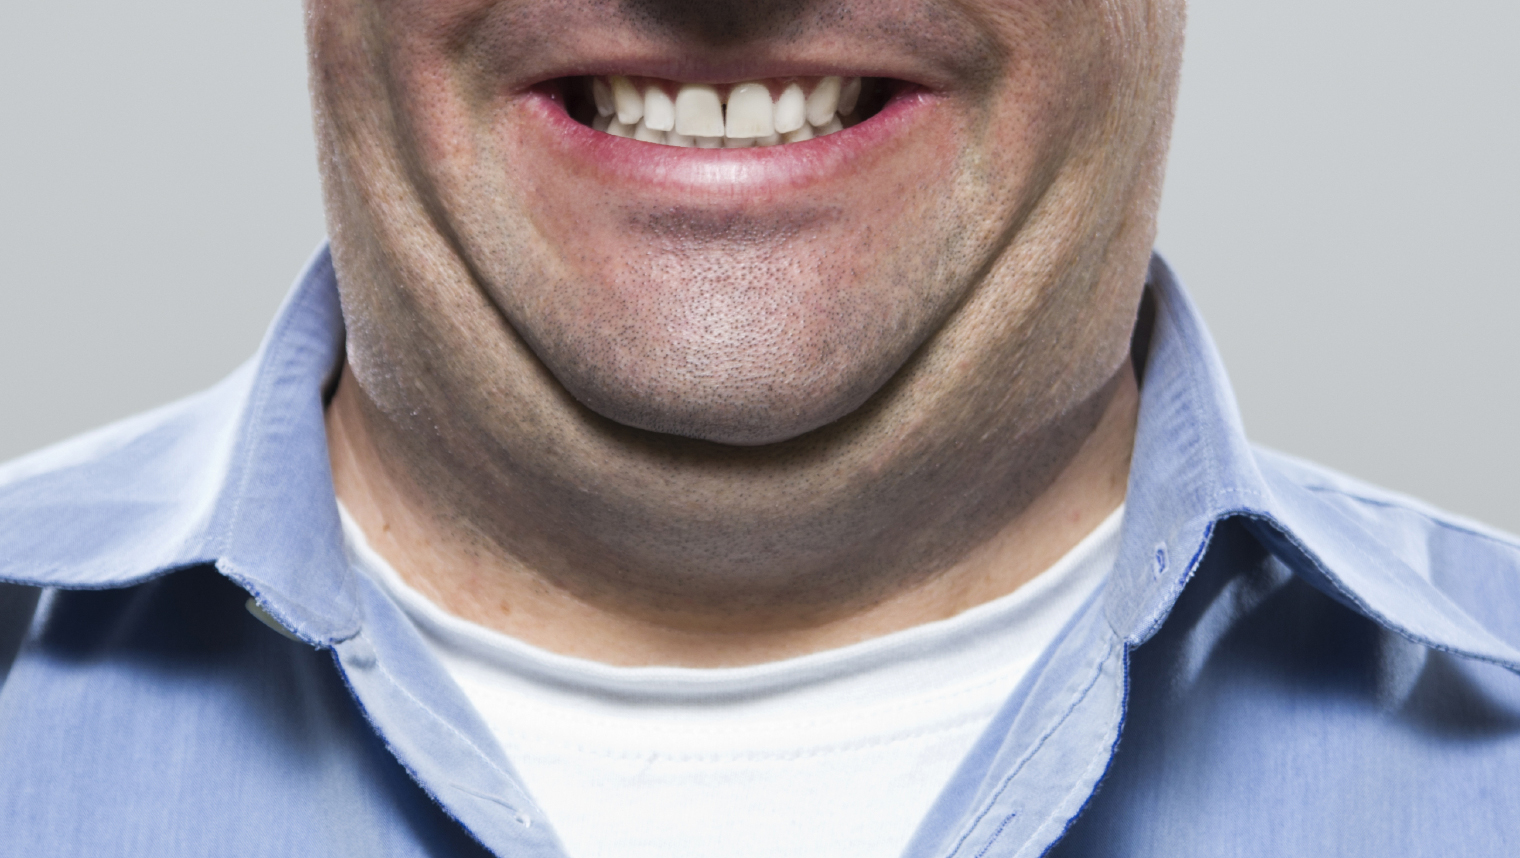 fda approves kybella new drug treatment for double chins cbs news